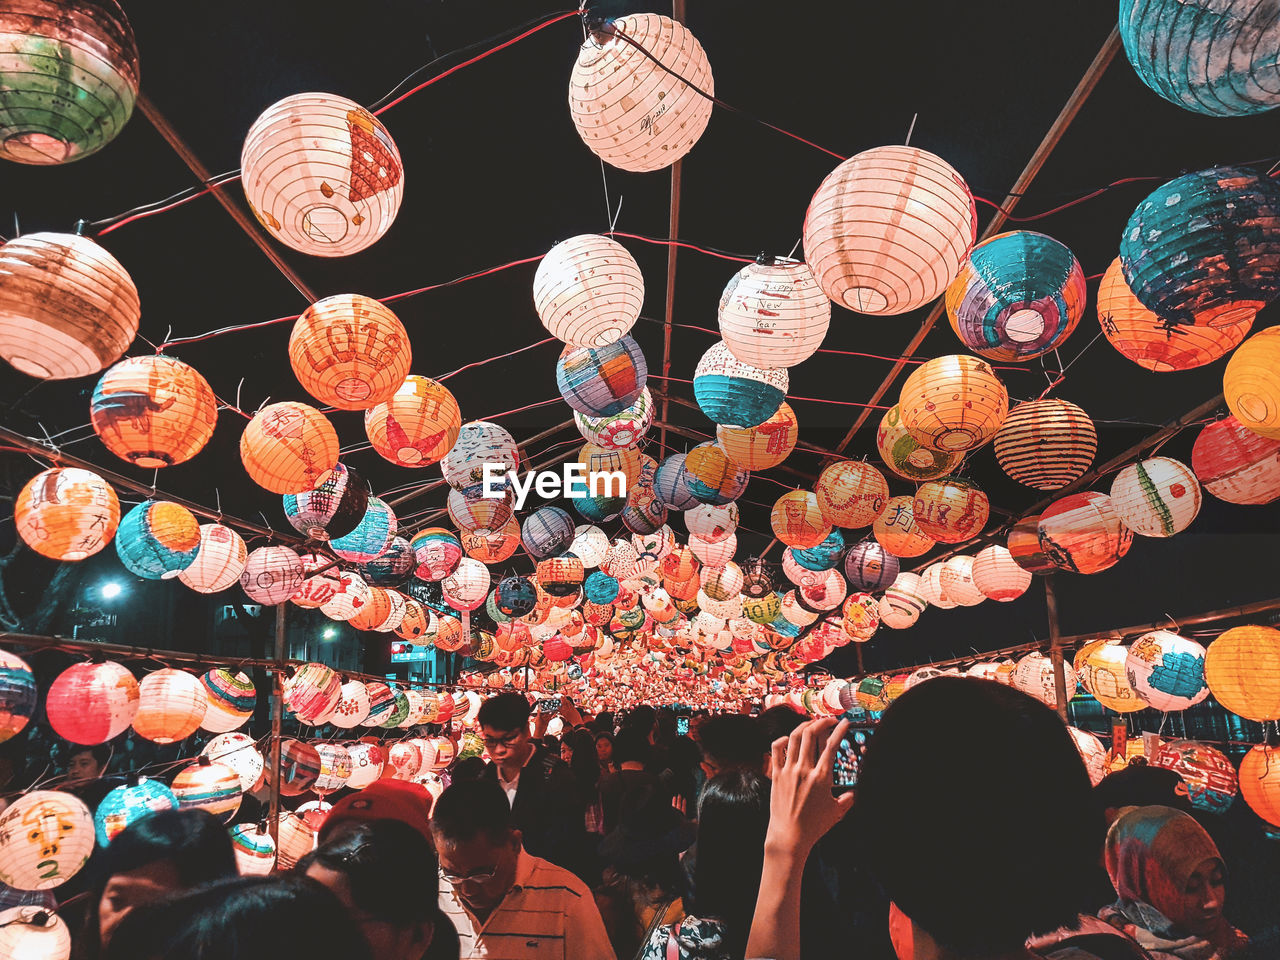 lantern, night, lighting equipment, decoration, hanging, chinese lantern, low angle view, group of people, large group of objects, illuminated, celebration, large group of people, abundance, real people, lifestyles, men, leisure activity, festival, paper lantern, outdoors